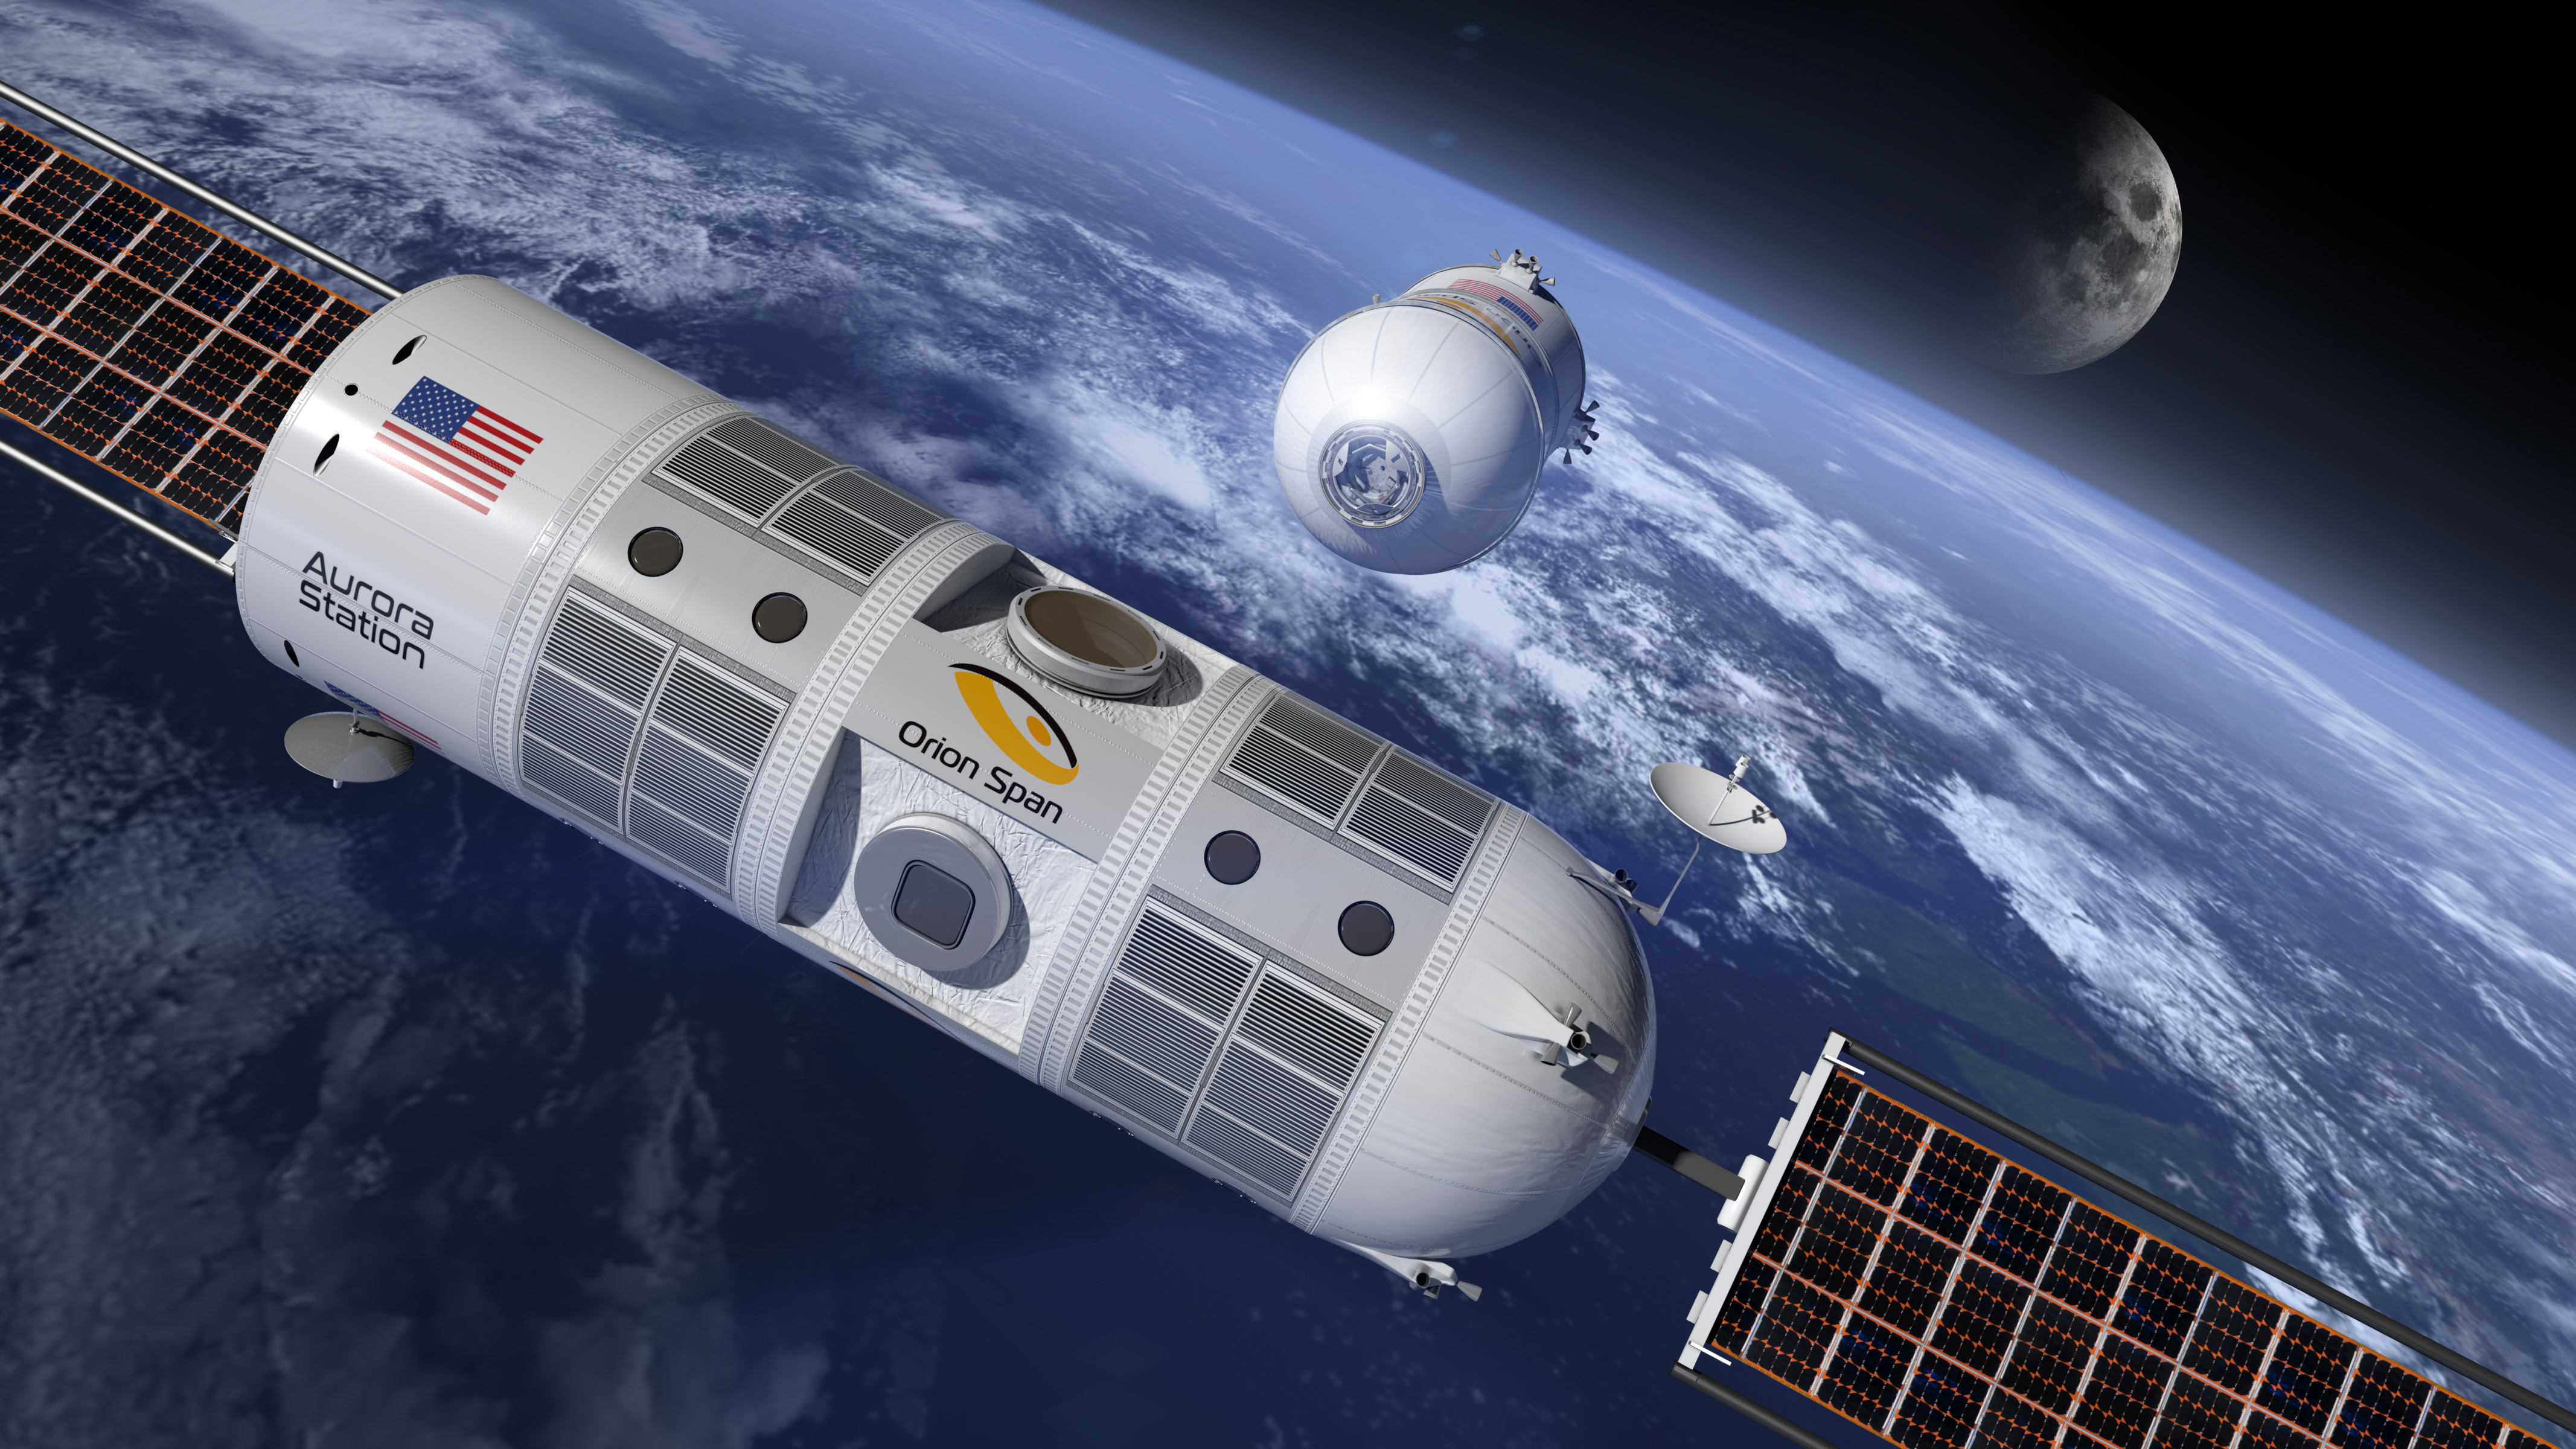 Luxury Space Hotel' to Launch in 2021 | Space